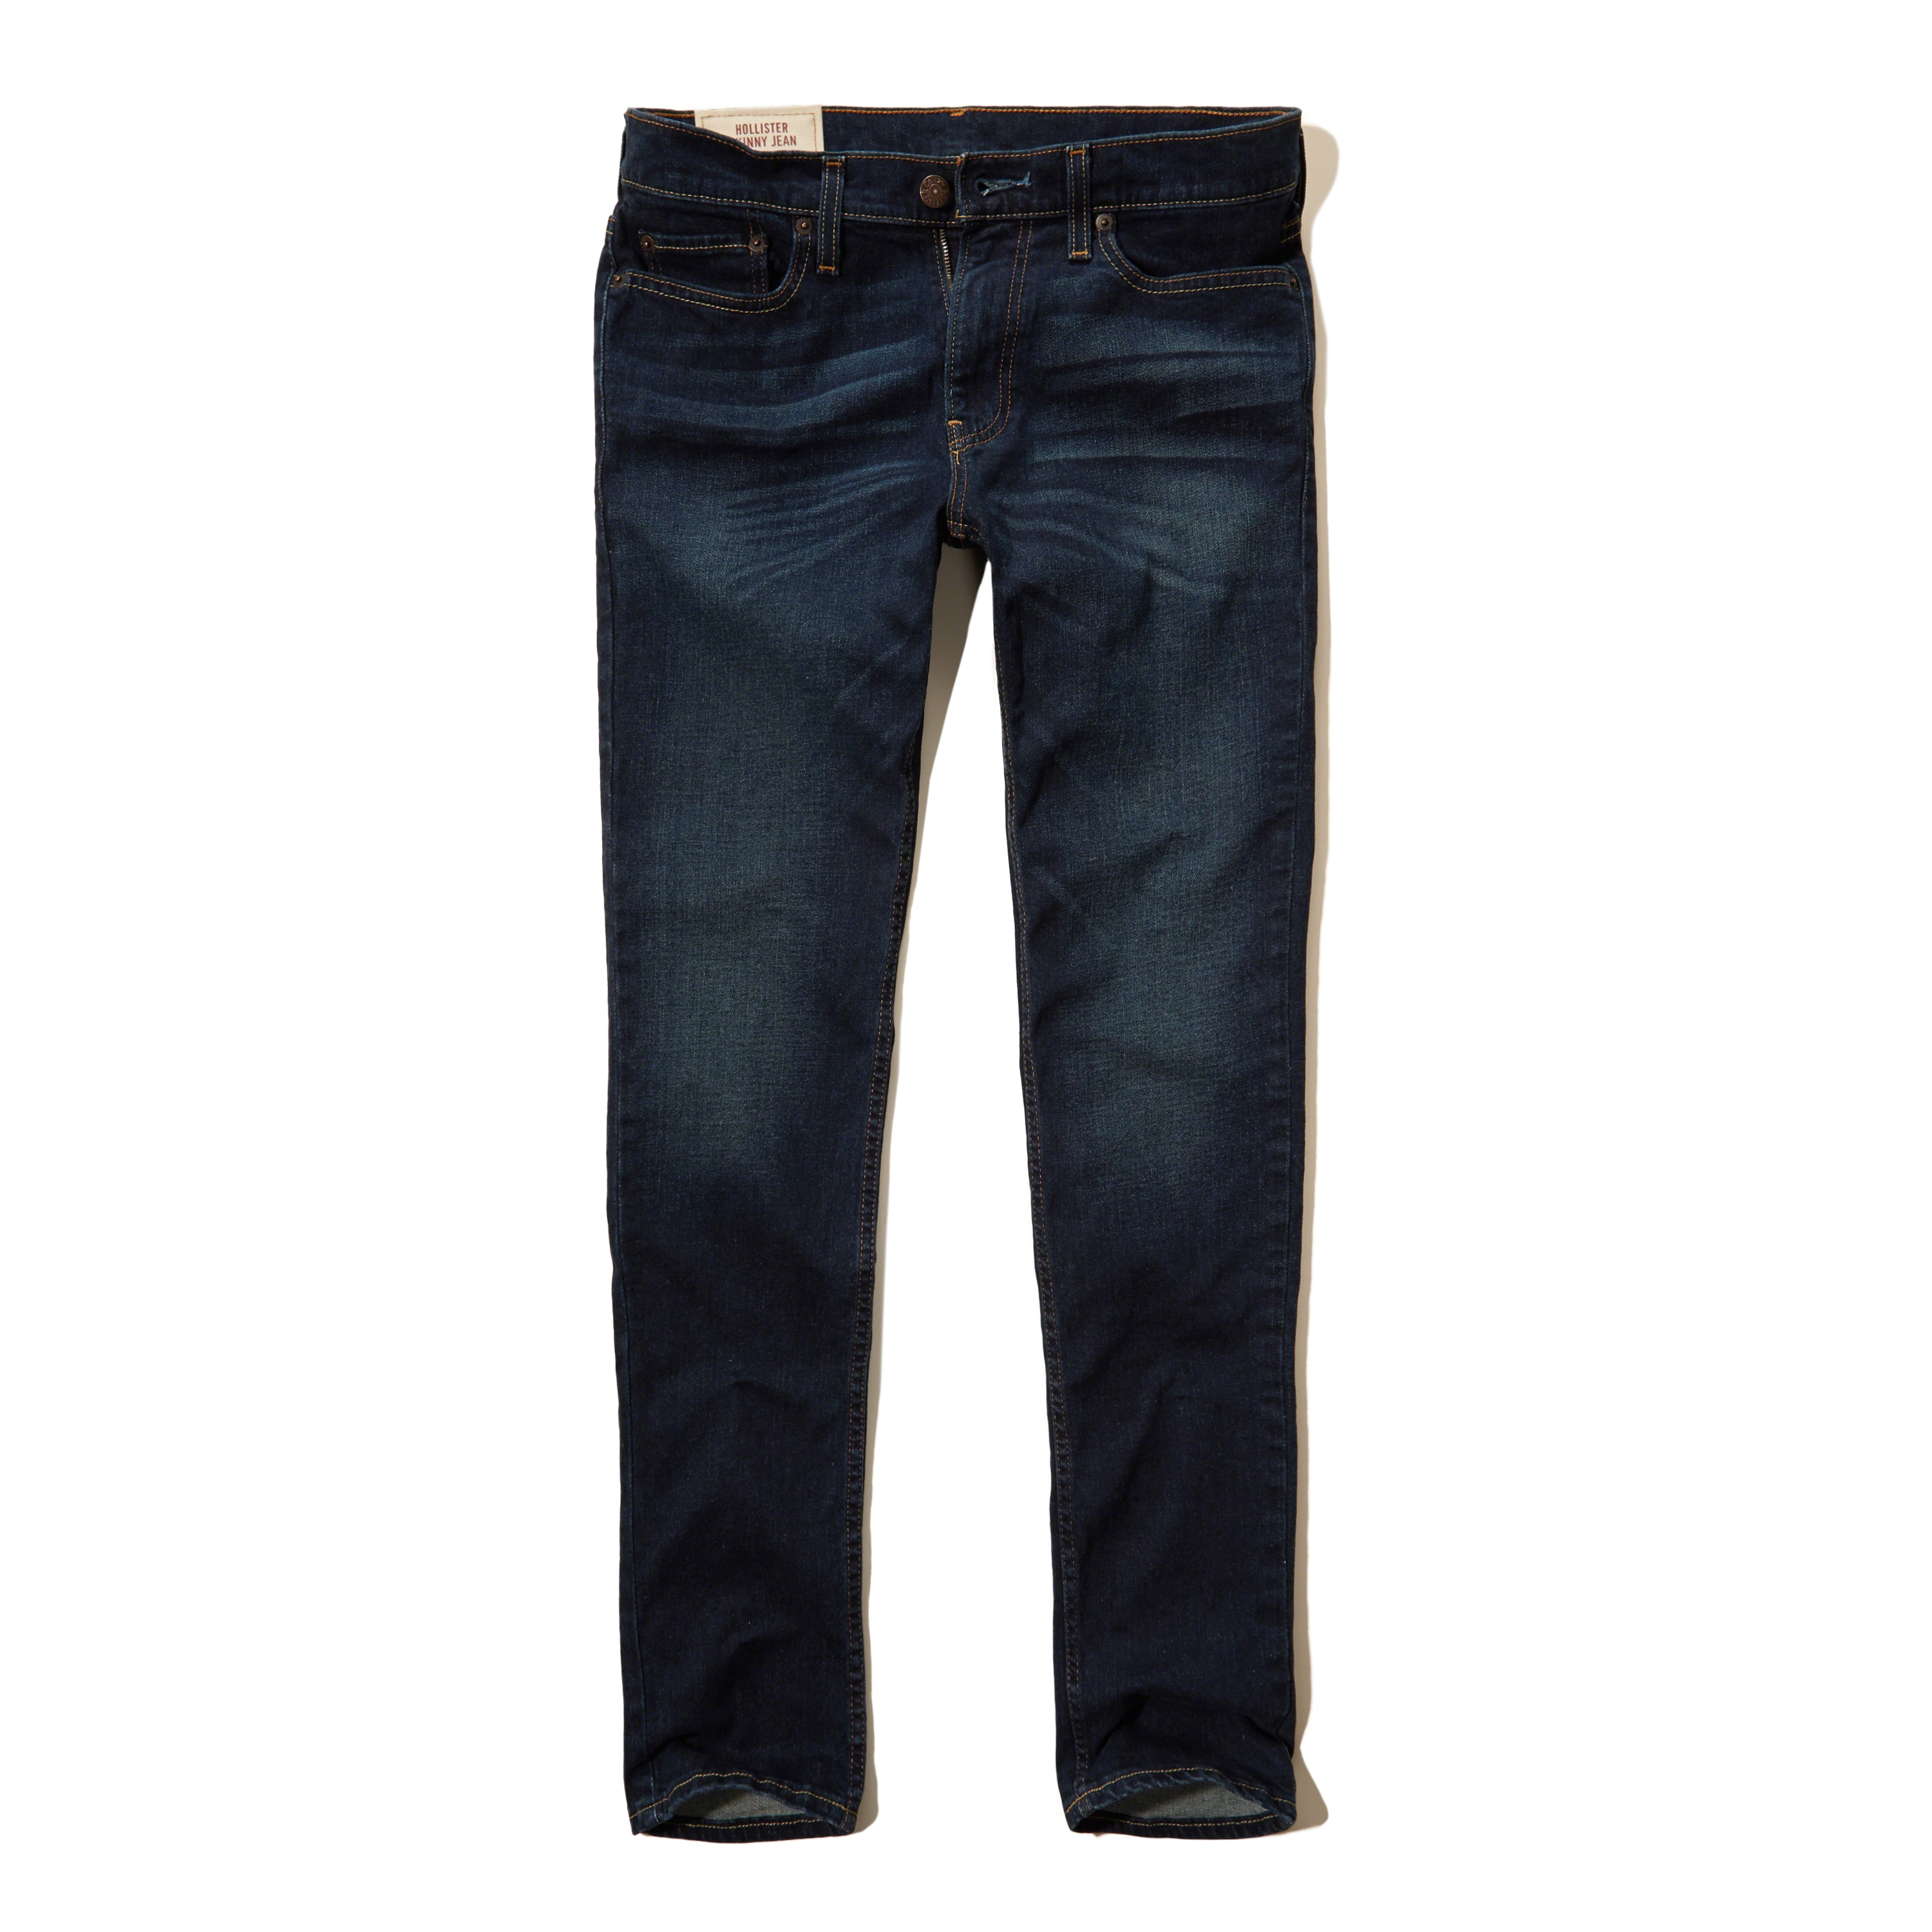 hollister dark jeans for men -#main